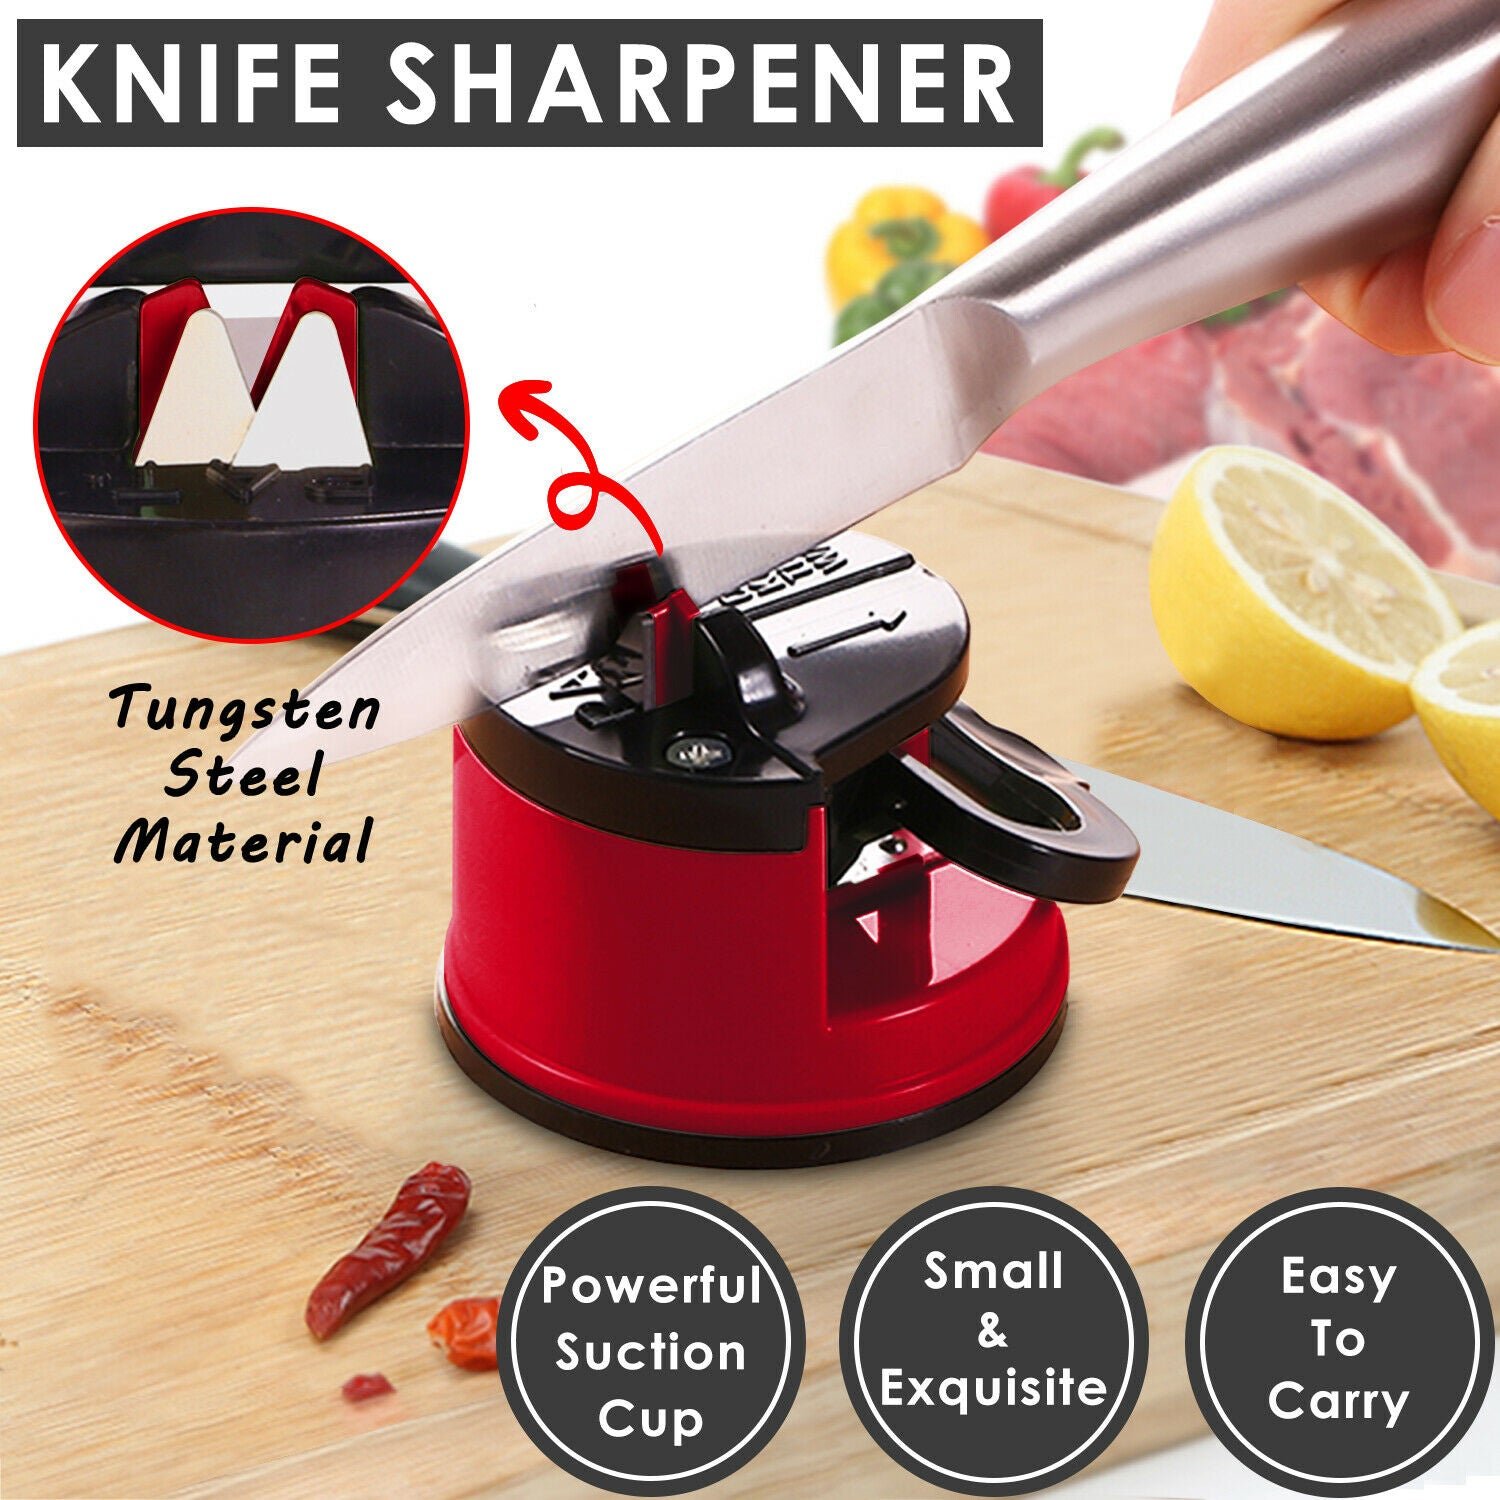 2Pcs Kitchen Sharpner Knife Sharpener Sharp Diamond For Knives Blades Scissors Tools